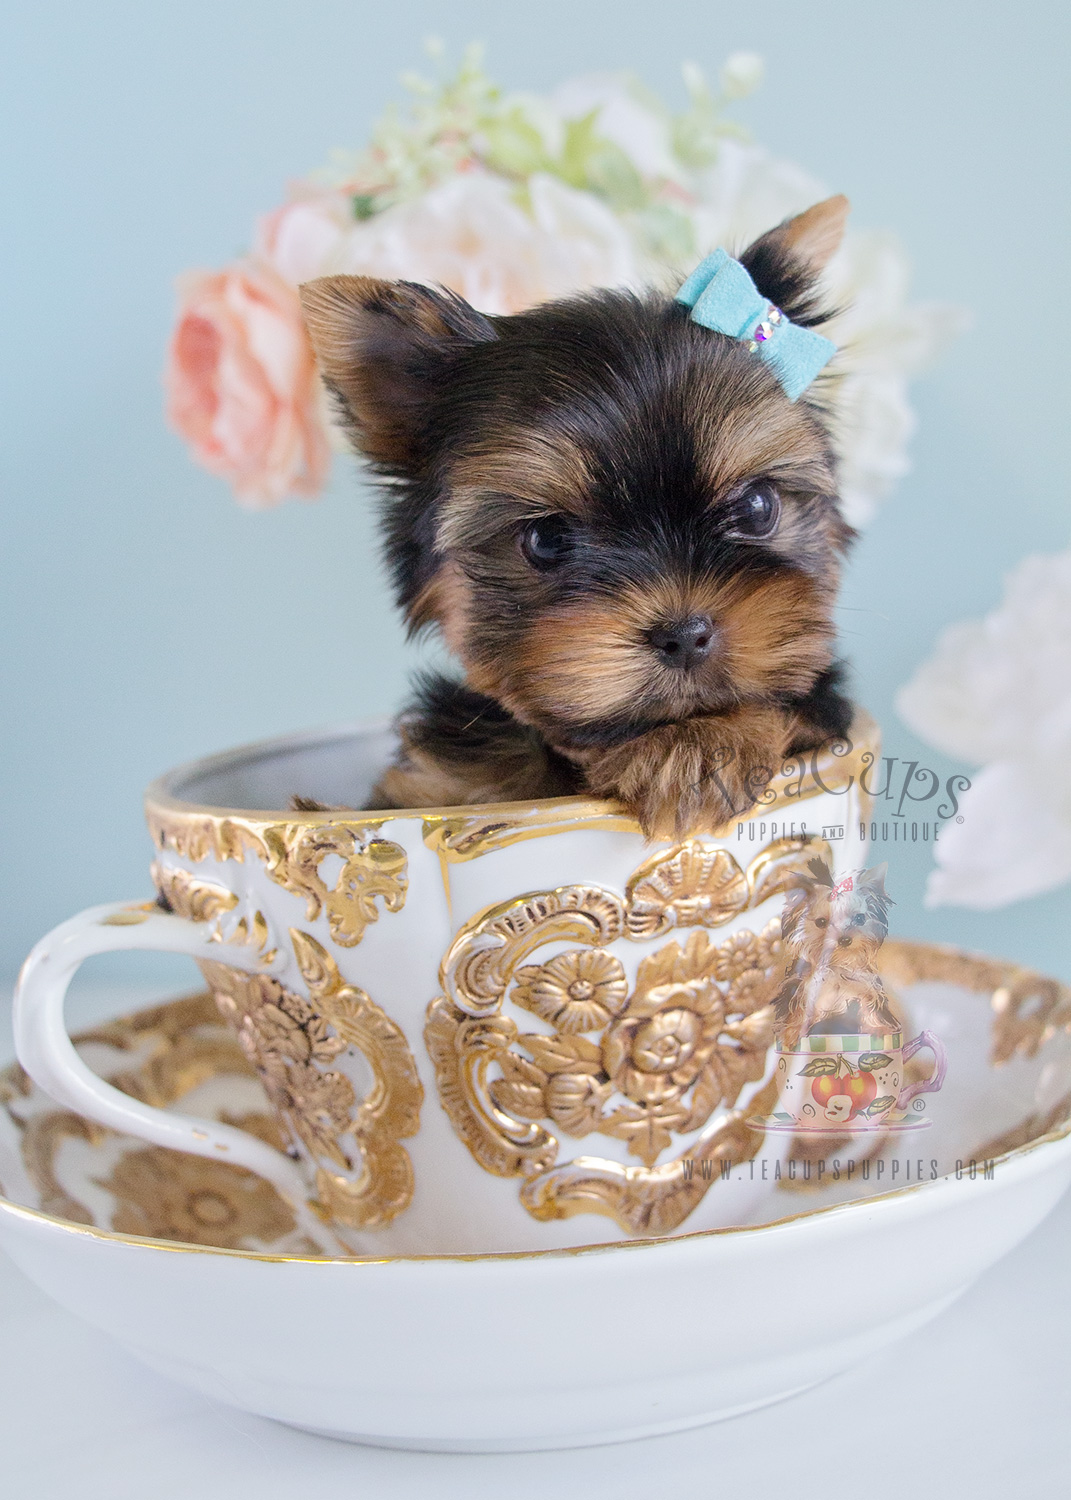 Cute Yorkie Puppy For Sale In Broward Teacups Puppies Boutique